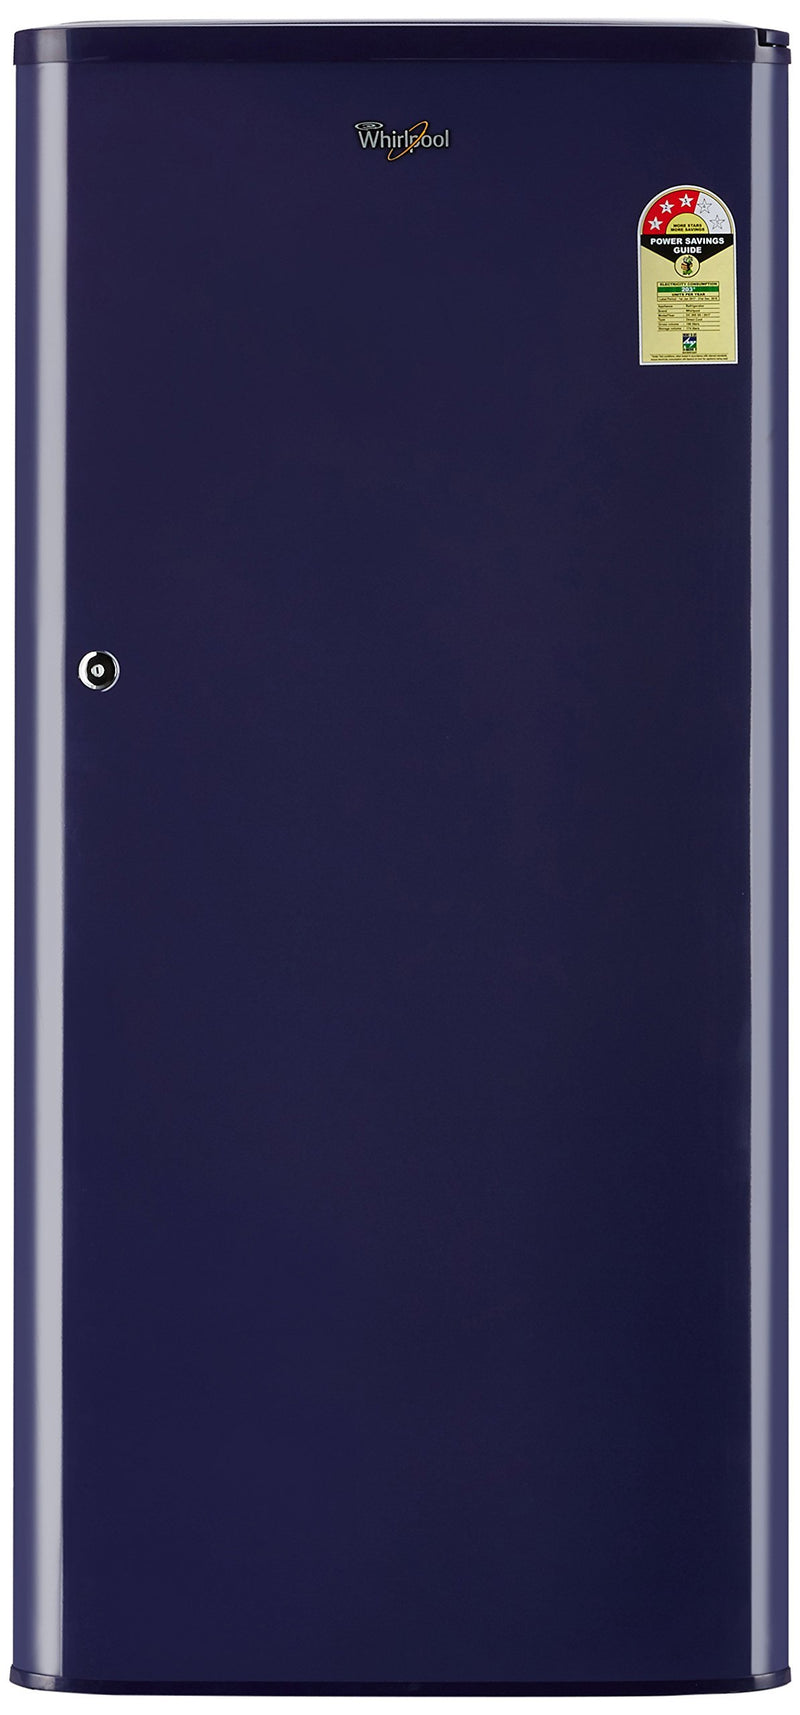 Whirlpool 190 L 3 Star Direct Cool Single Door Refrigerator